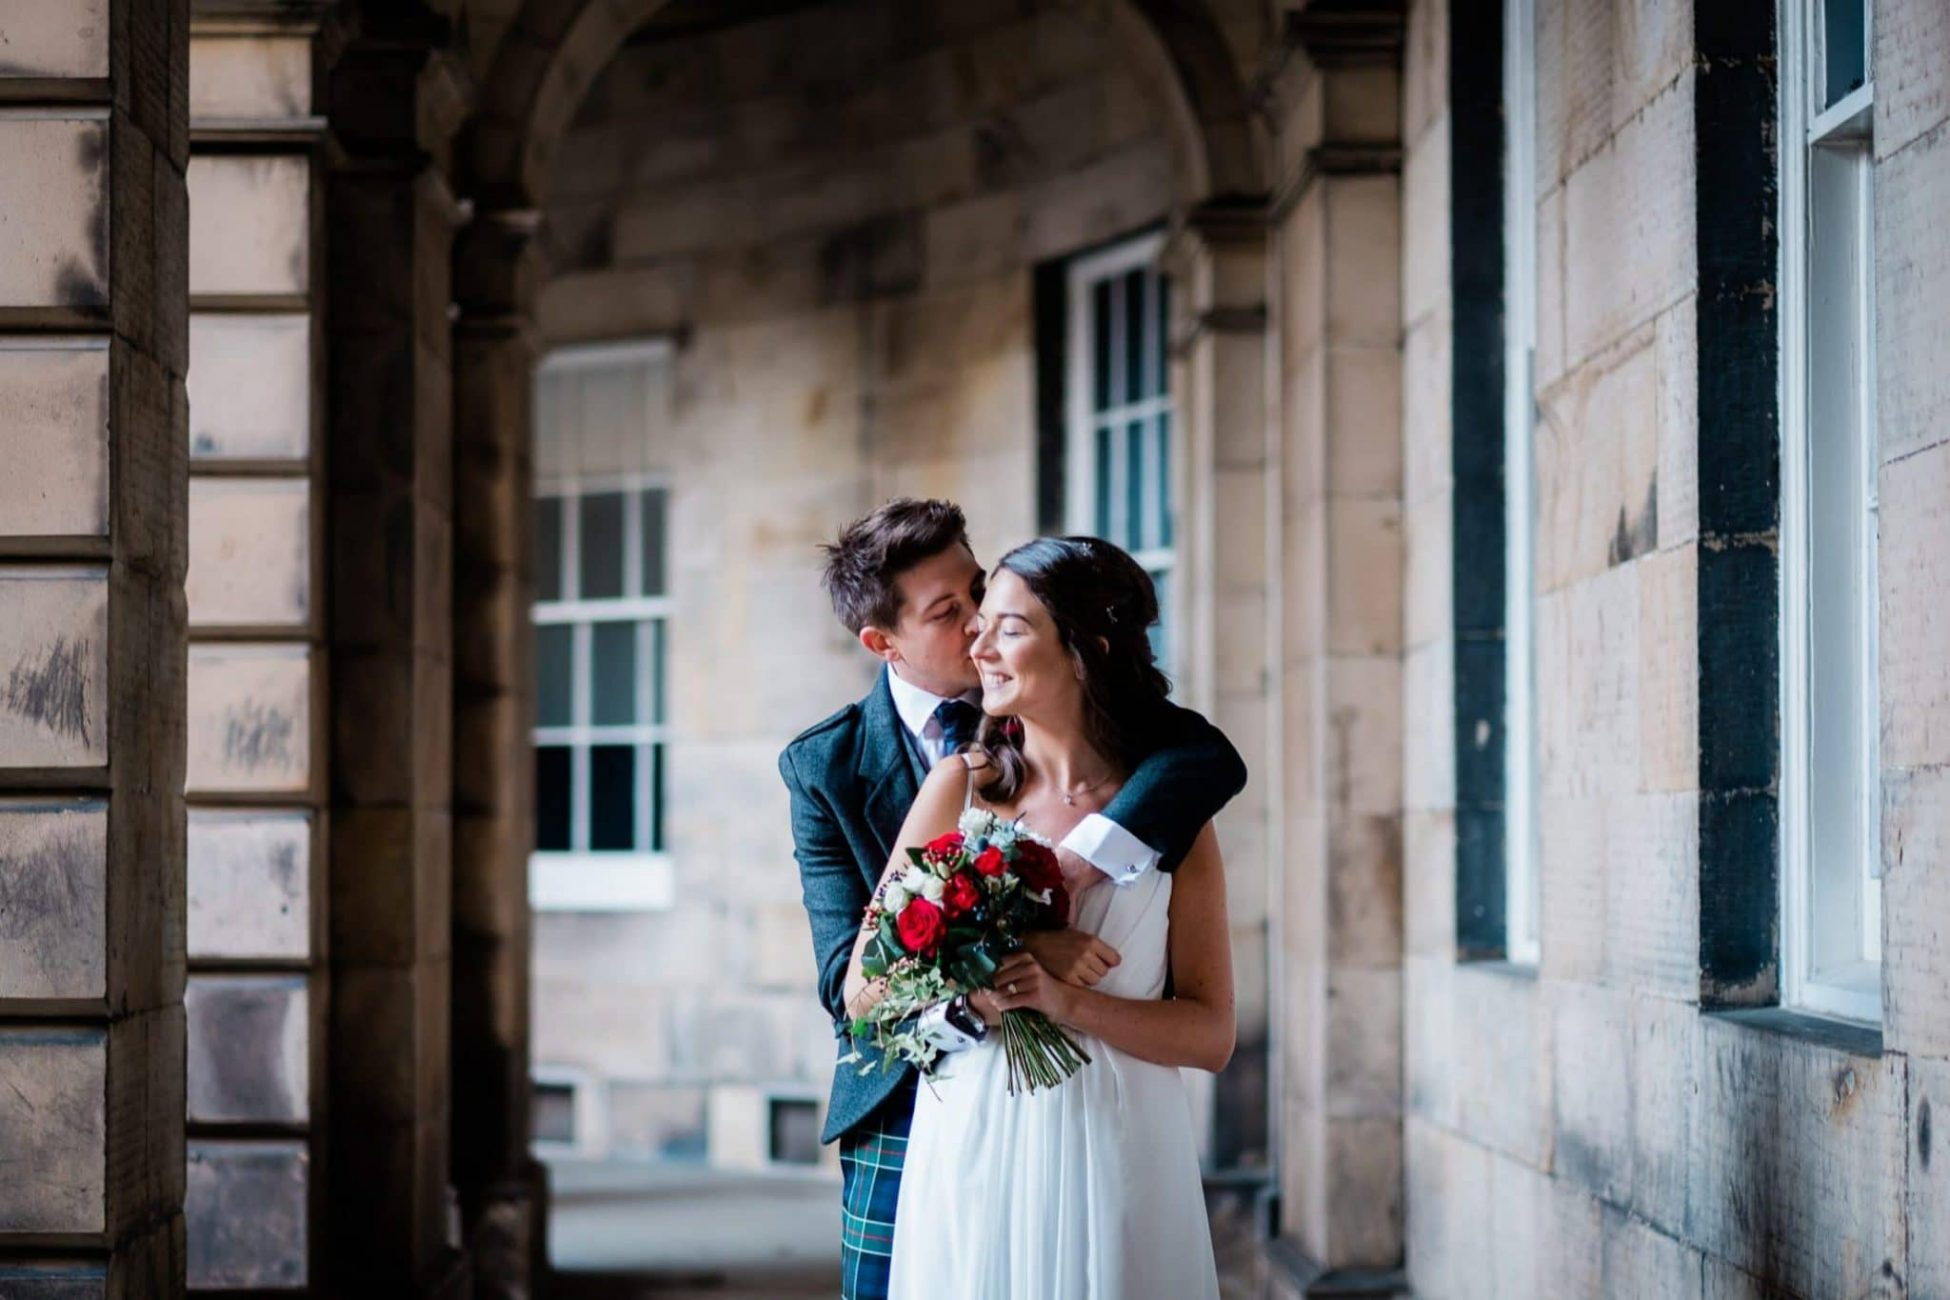 A wedding portrait near the Royal Mile in Edinburgh